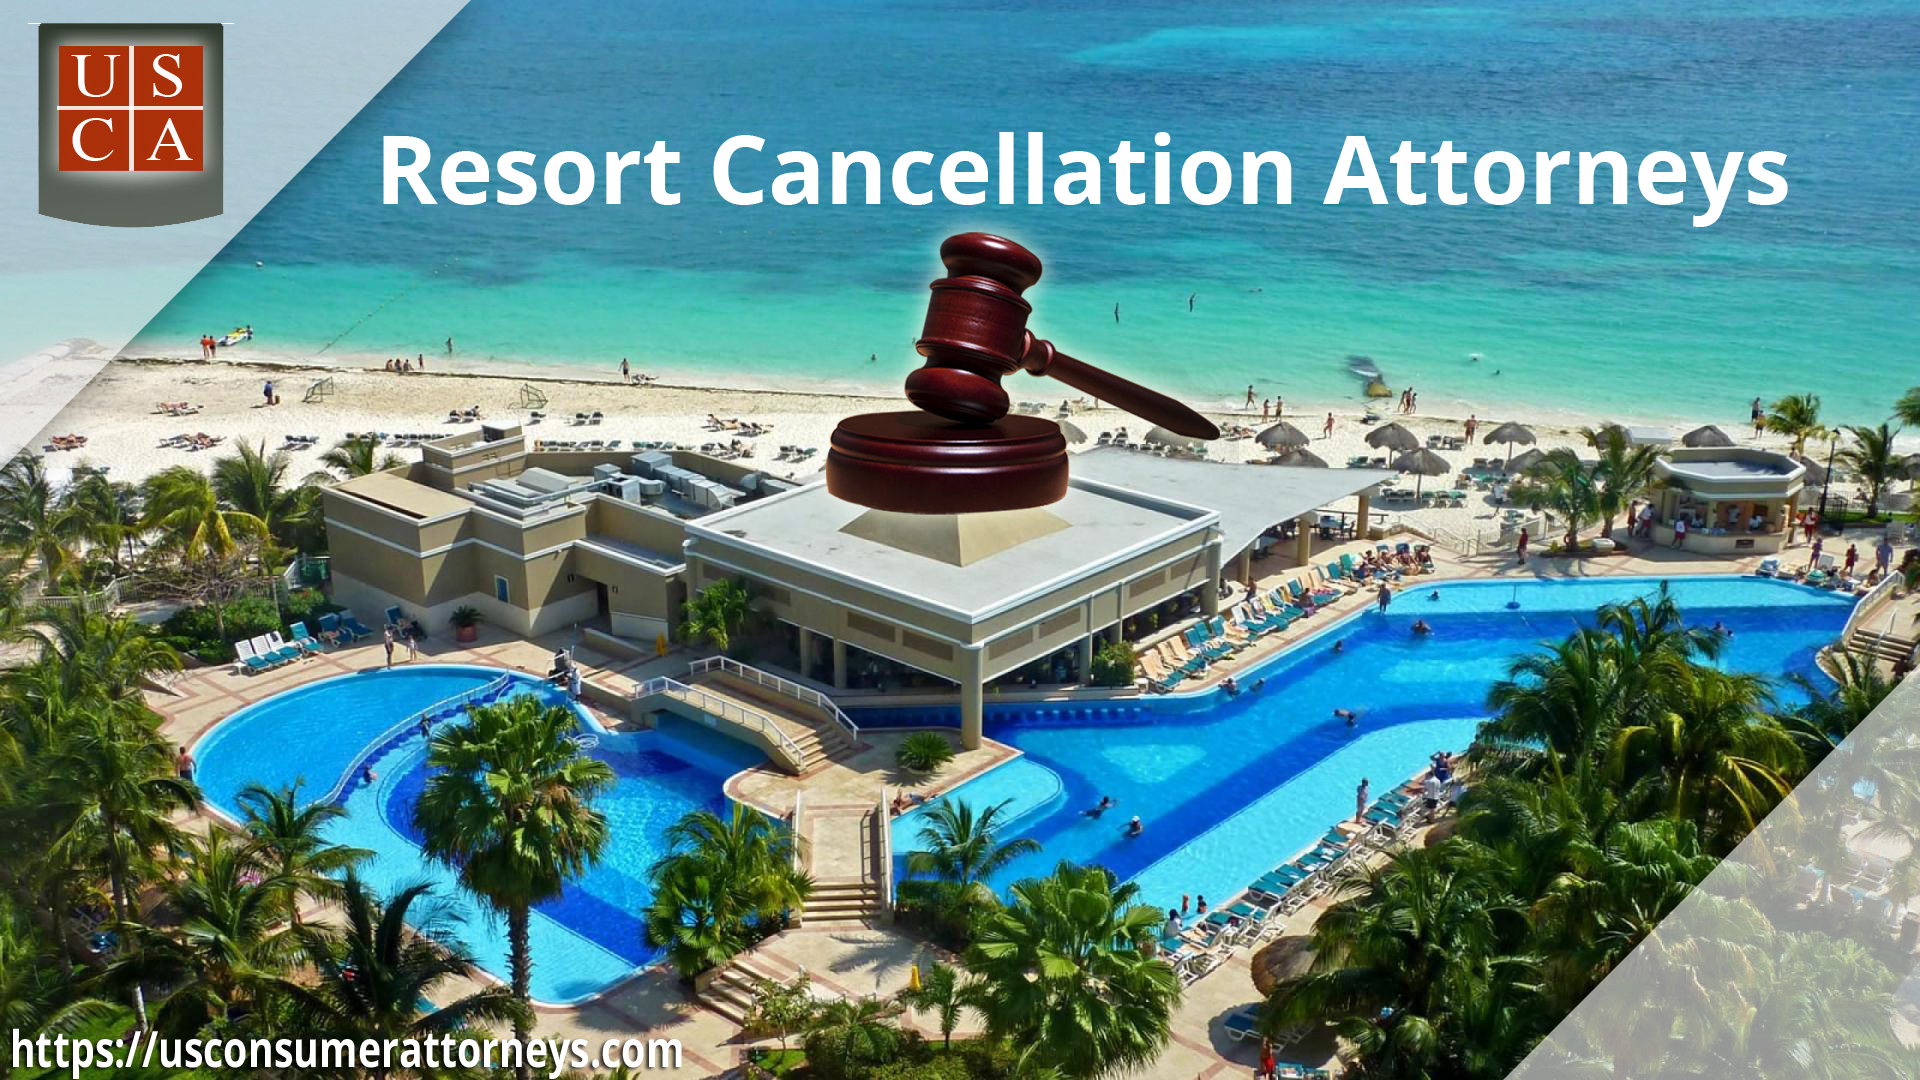 US Consumer Attorneys is one of the leading timeshare attorney's firms in San Diego, USA. If you are looking for cancellation of your resort then appoint US Consumer Attorneys who have experienced lawyers for quick and assured resort timeshare mortgage solutions to the consumers.